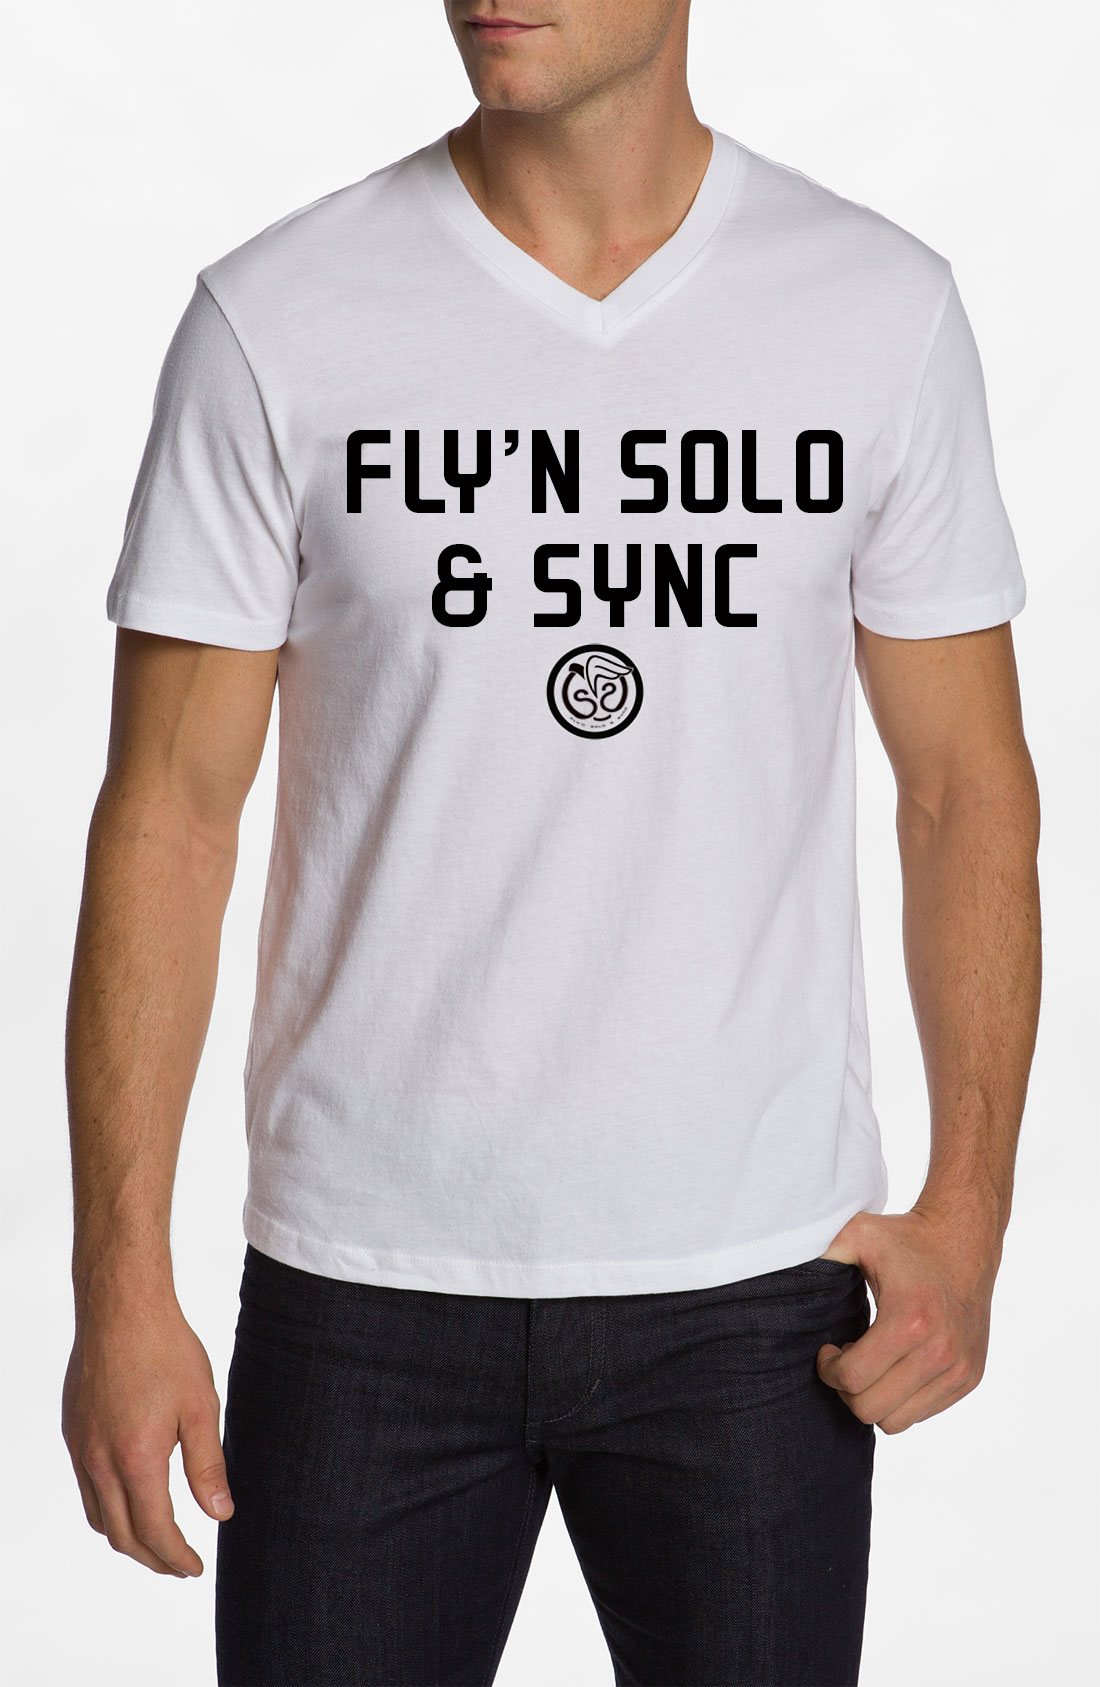 Fly'n Solo & Sync - White w/Black Print